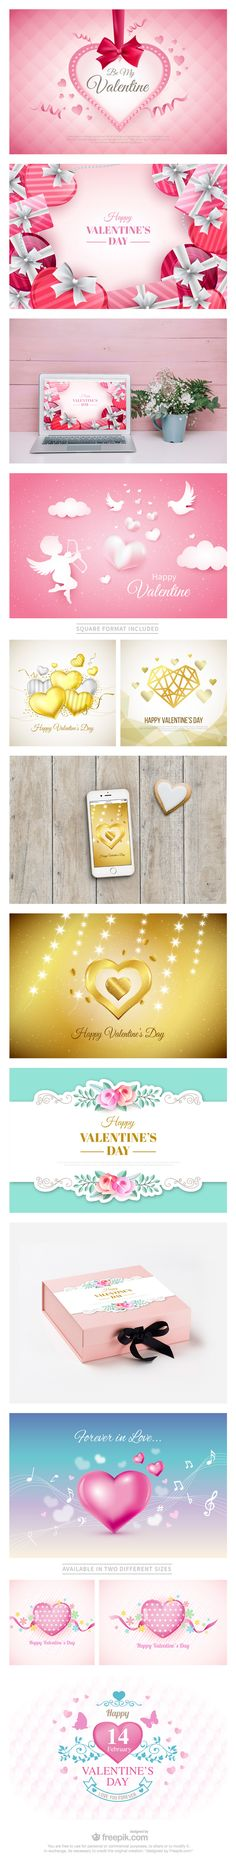 Free Download : A Huge Set Of Valentine's Day Backgrounds